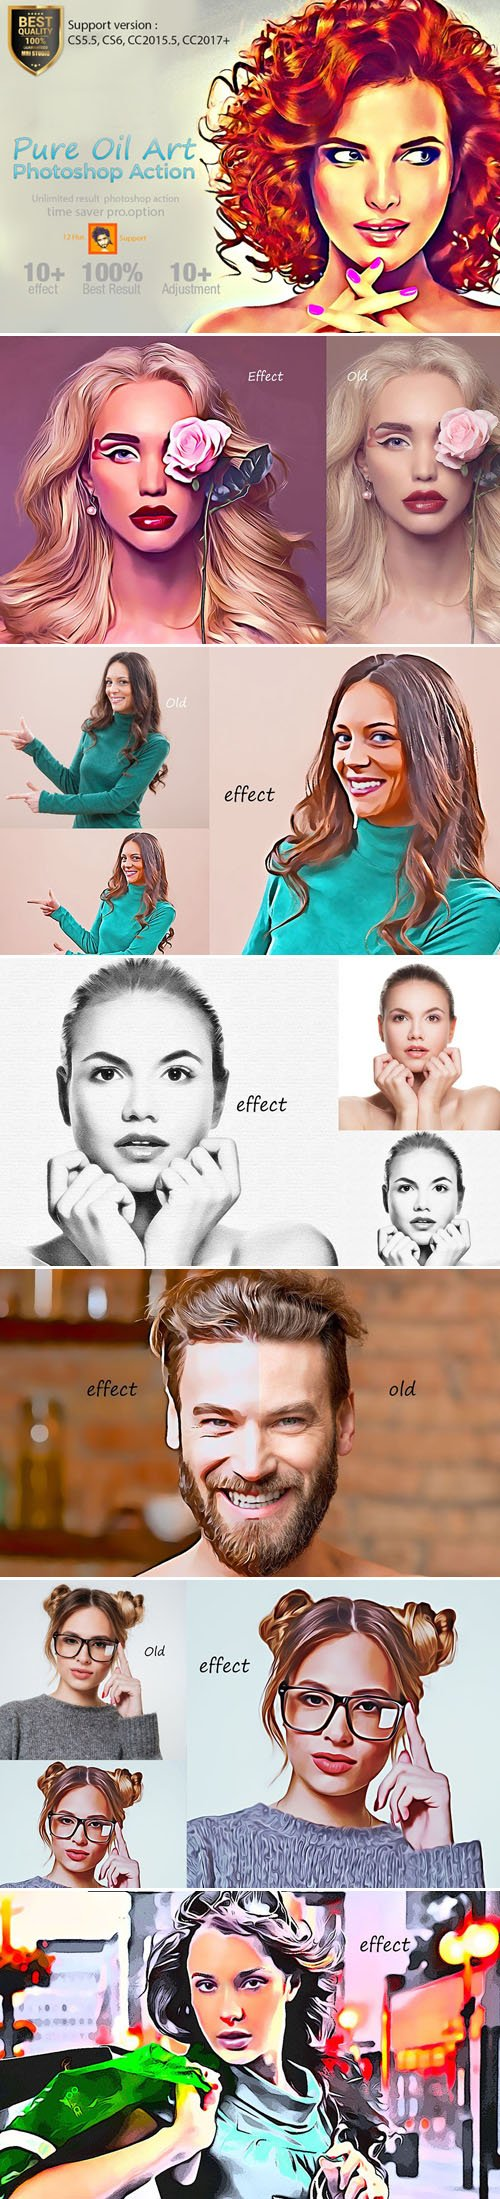 Pure Oil Art Actions for Photoshop